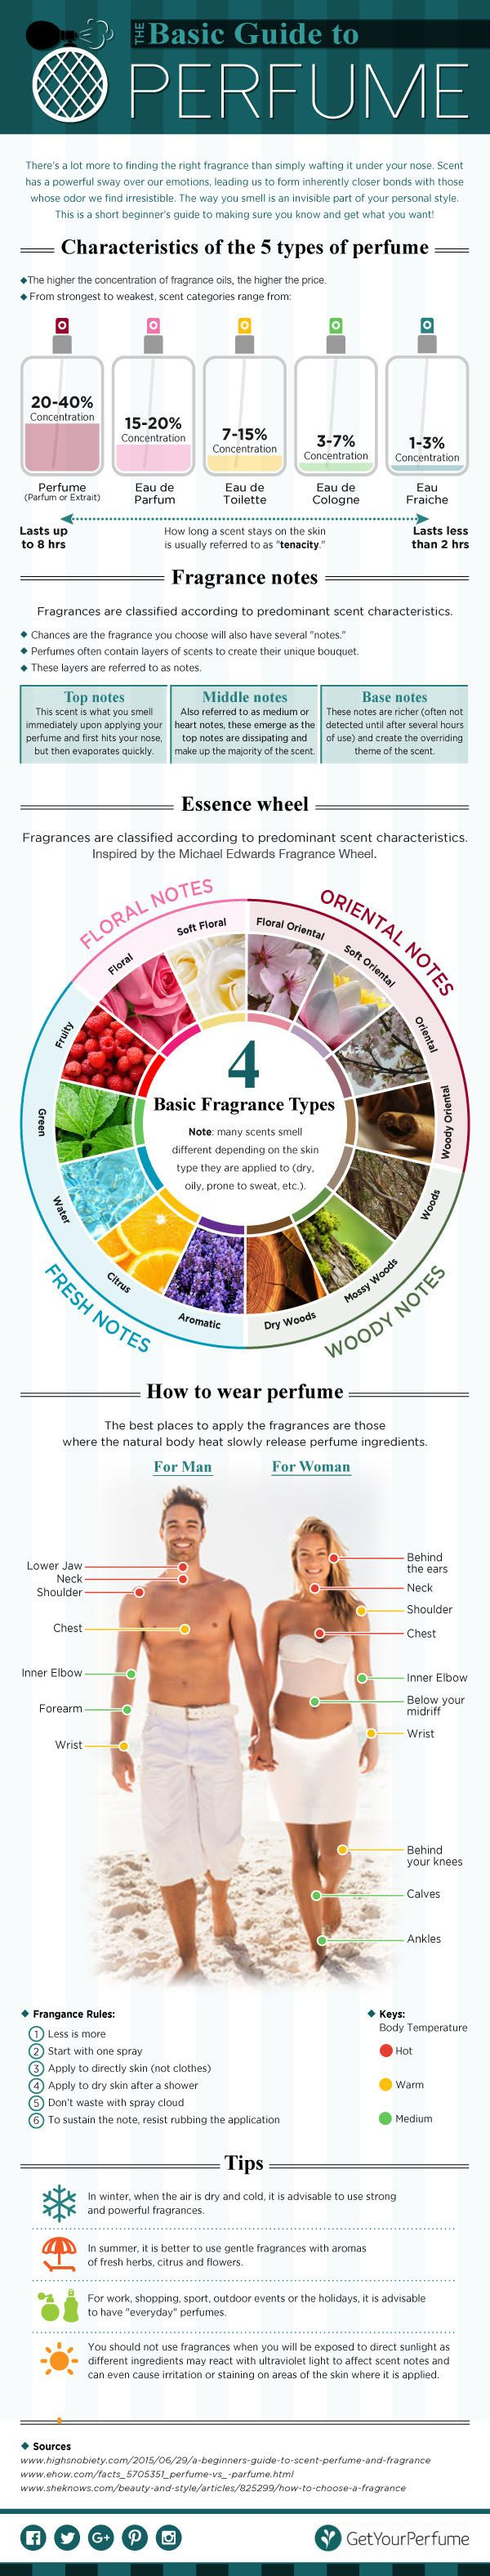 How to Wear Perfume, Perfume, Choosing the Right Scent ...